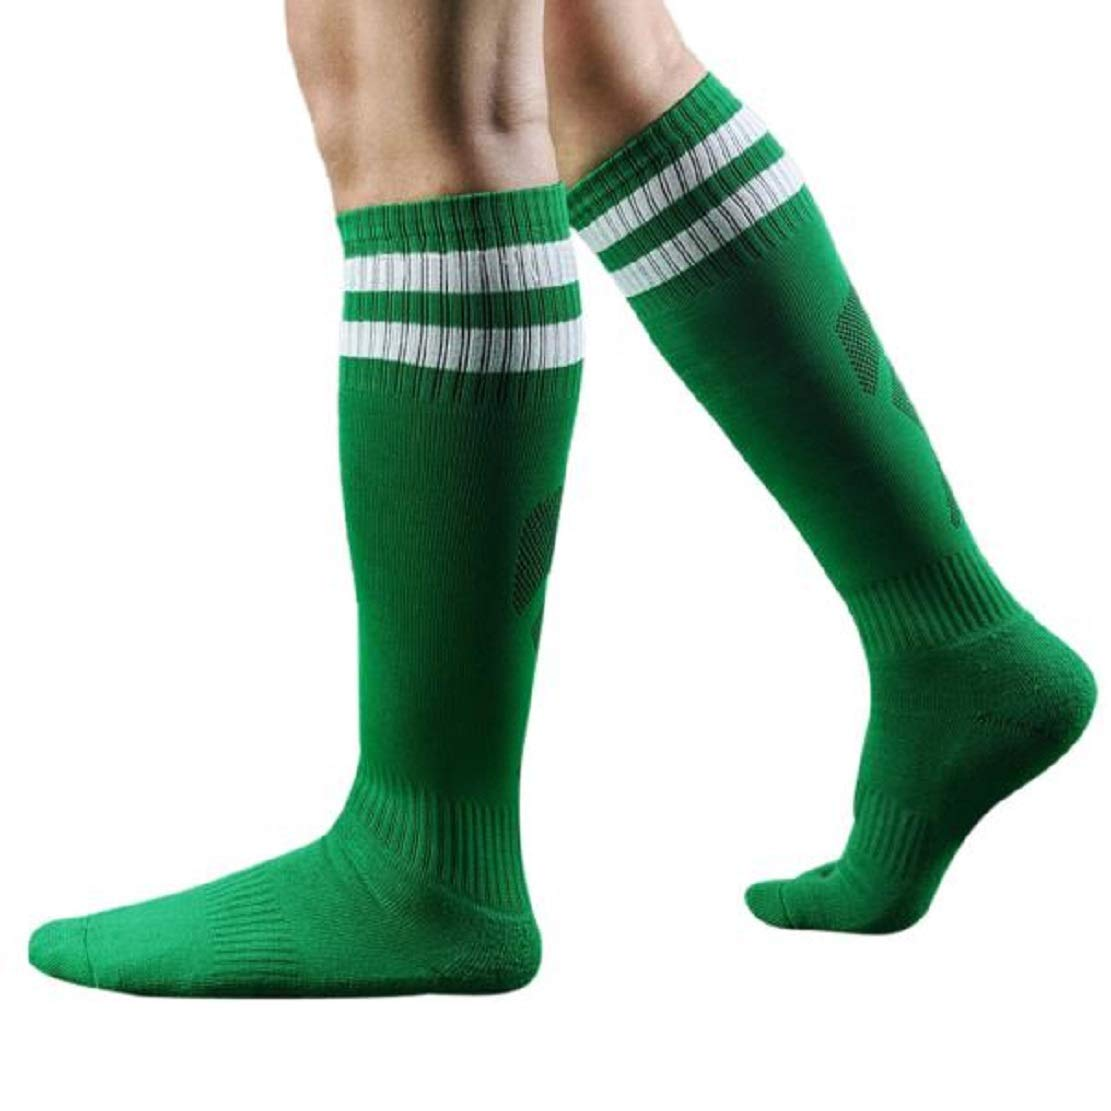 OPAKY Men Sport Football Soccer Long Socks Over Knee High Sock Baseball Hockey MenS Soccer Stockings Free Shipping